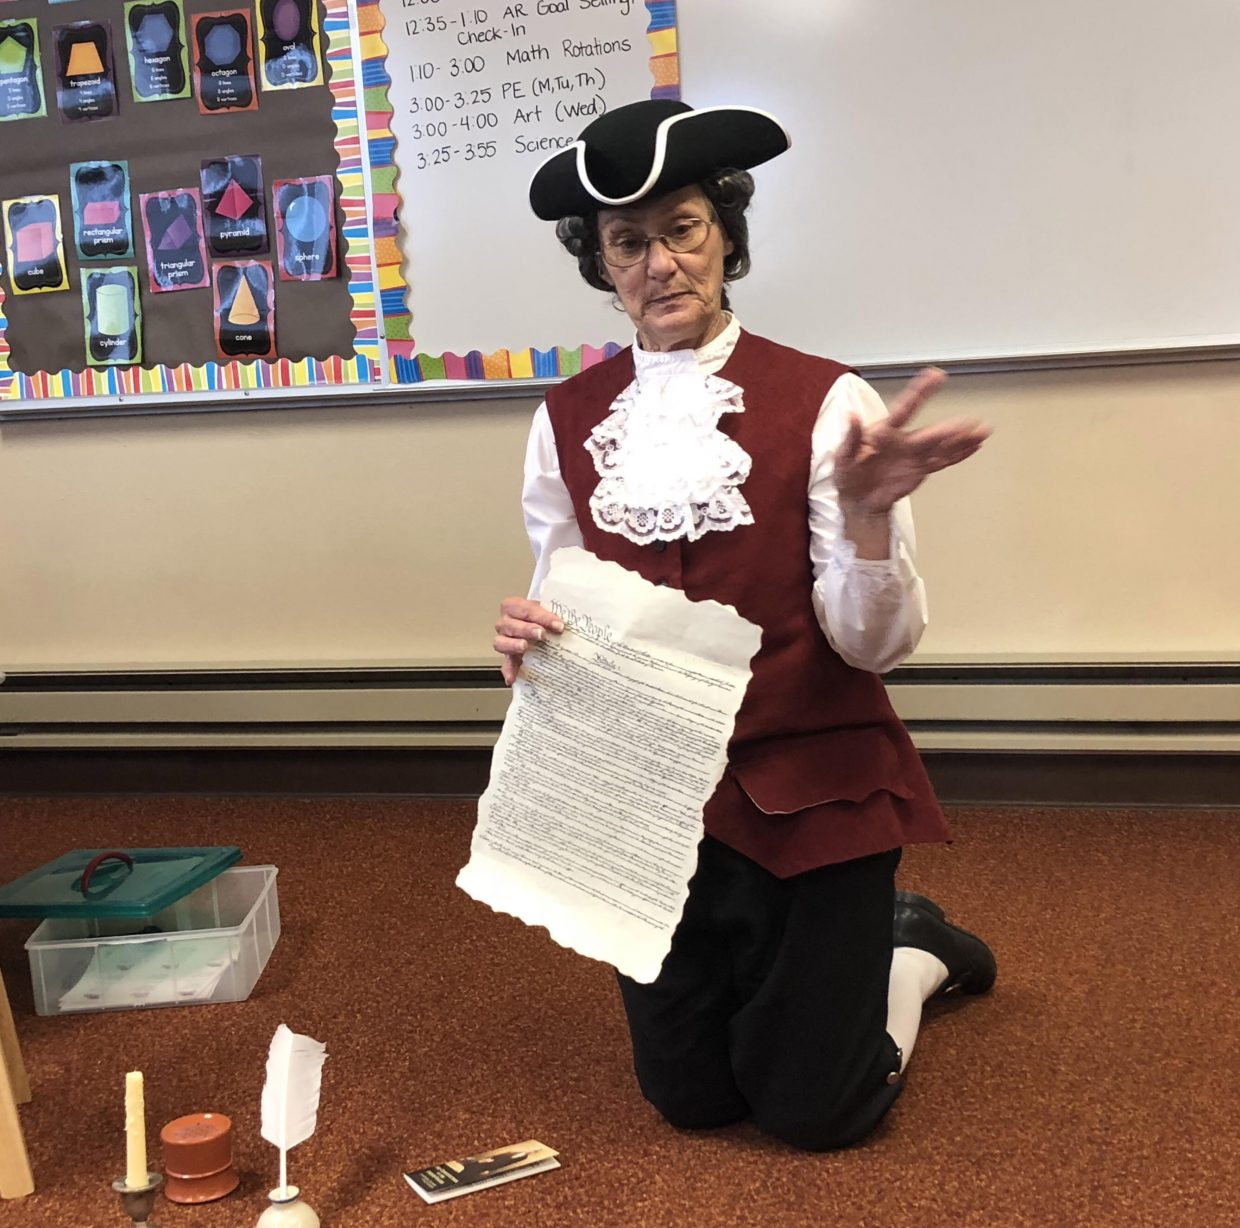 DAR constitution committee chairperson Debbie McClain brought history to life for students providing over 20 programs to all of Moffat County's public and private elementary schools during 2018 Constitution Week.